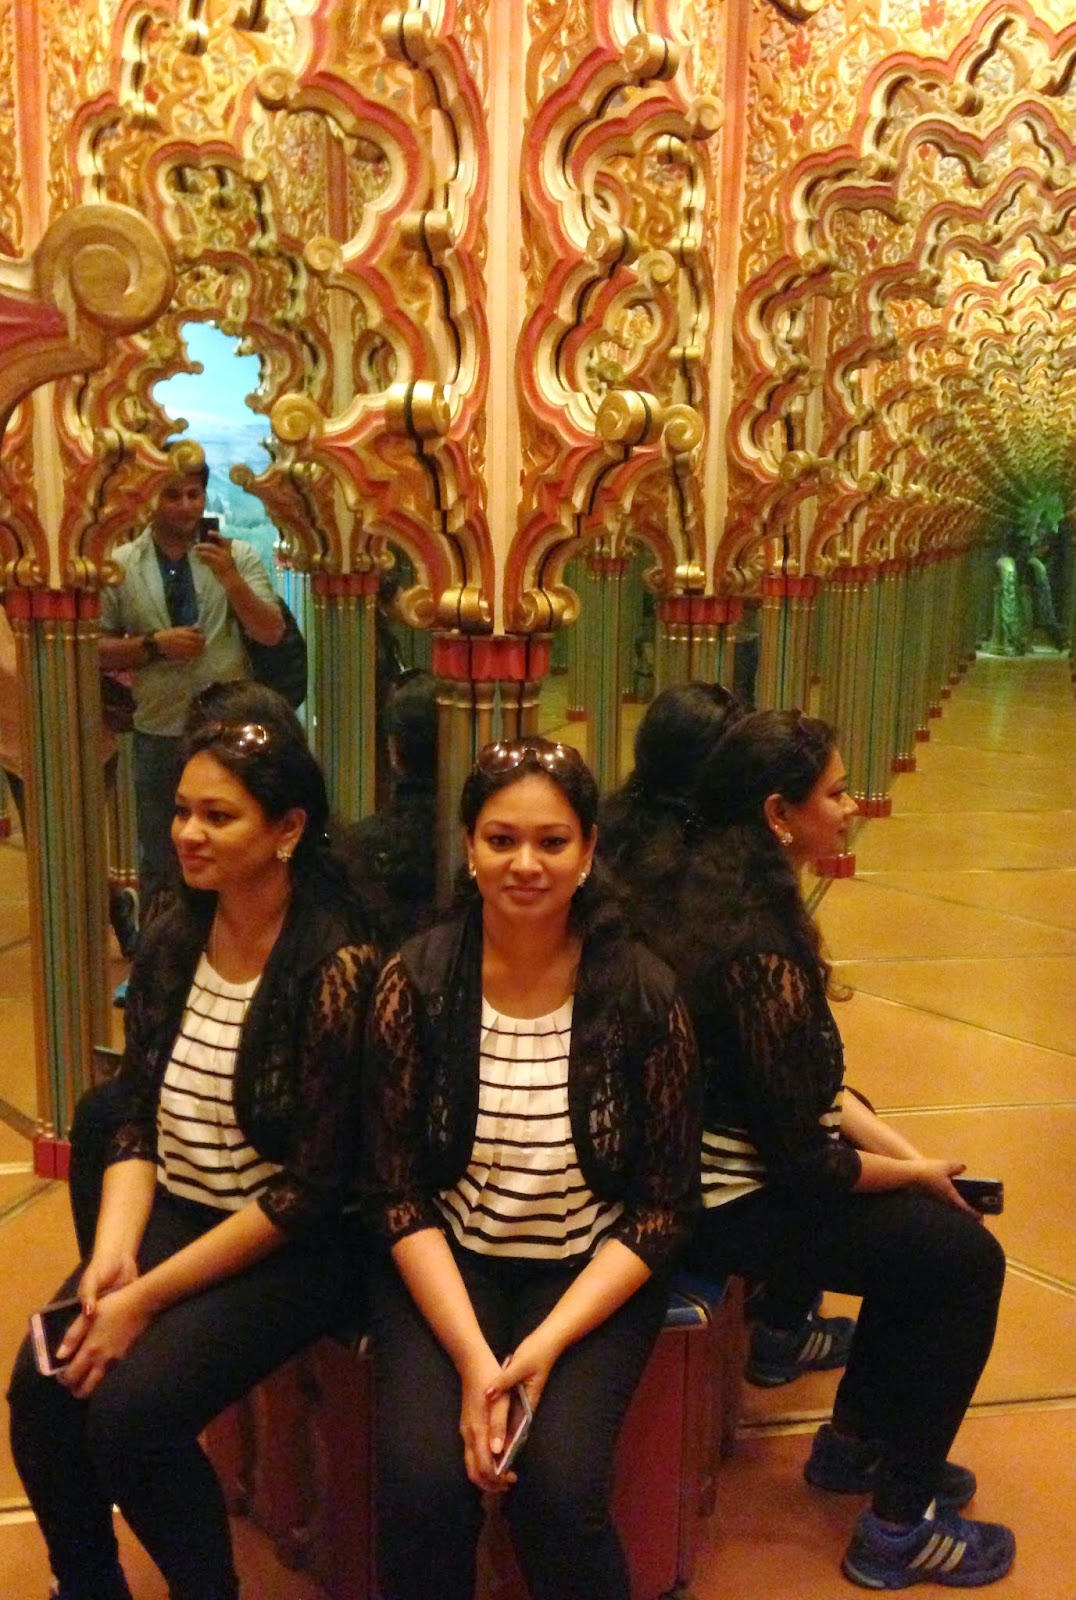 Hall of Mirrors Glacier Garden Lucerne